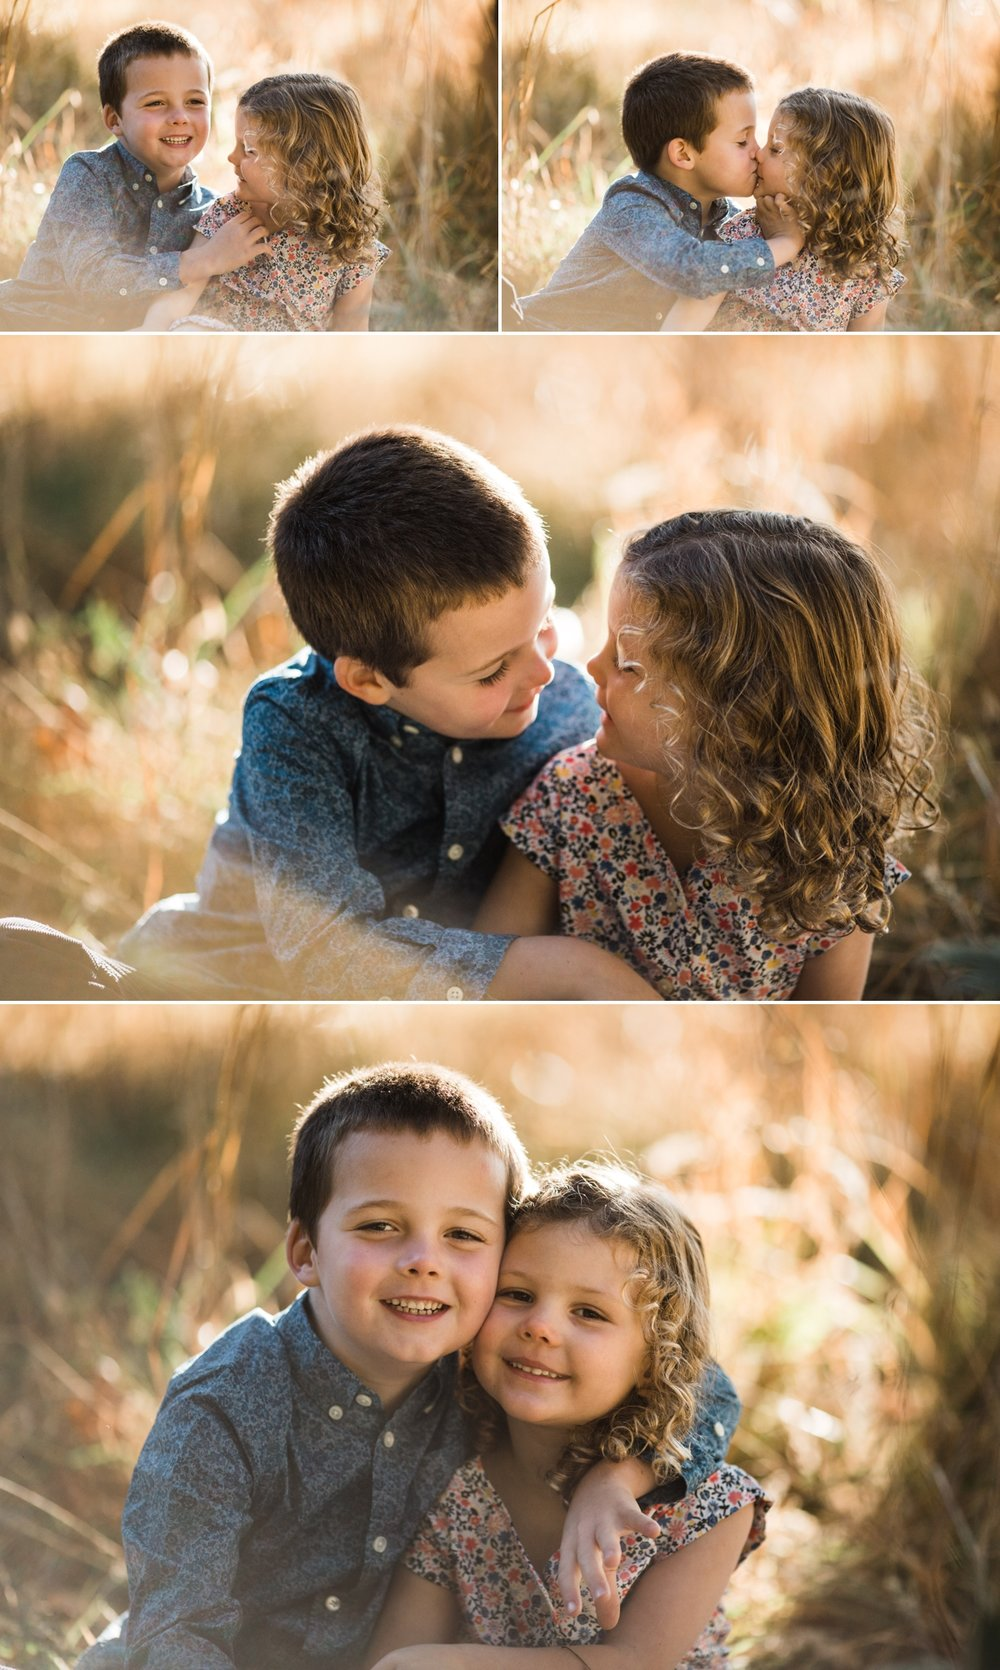 Elena S Blair Photography | Seattle family outdoors | Connected and emotive family photography